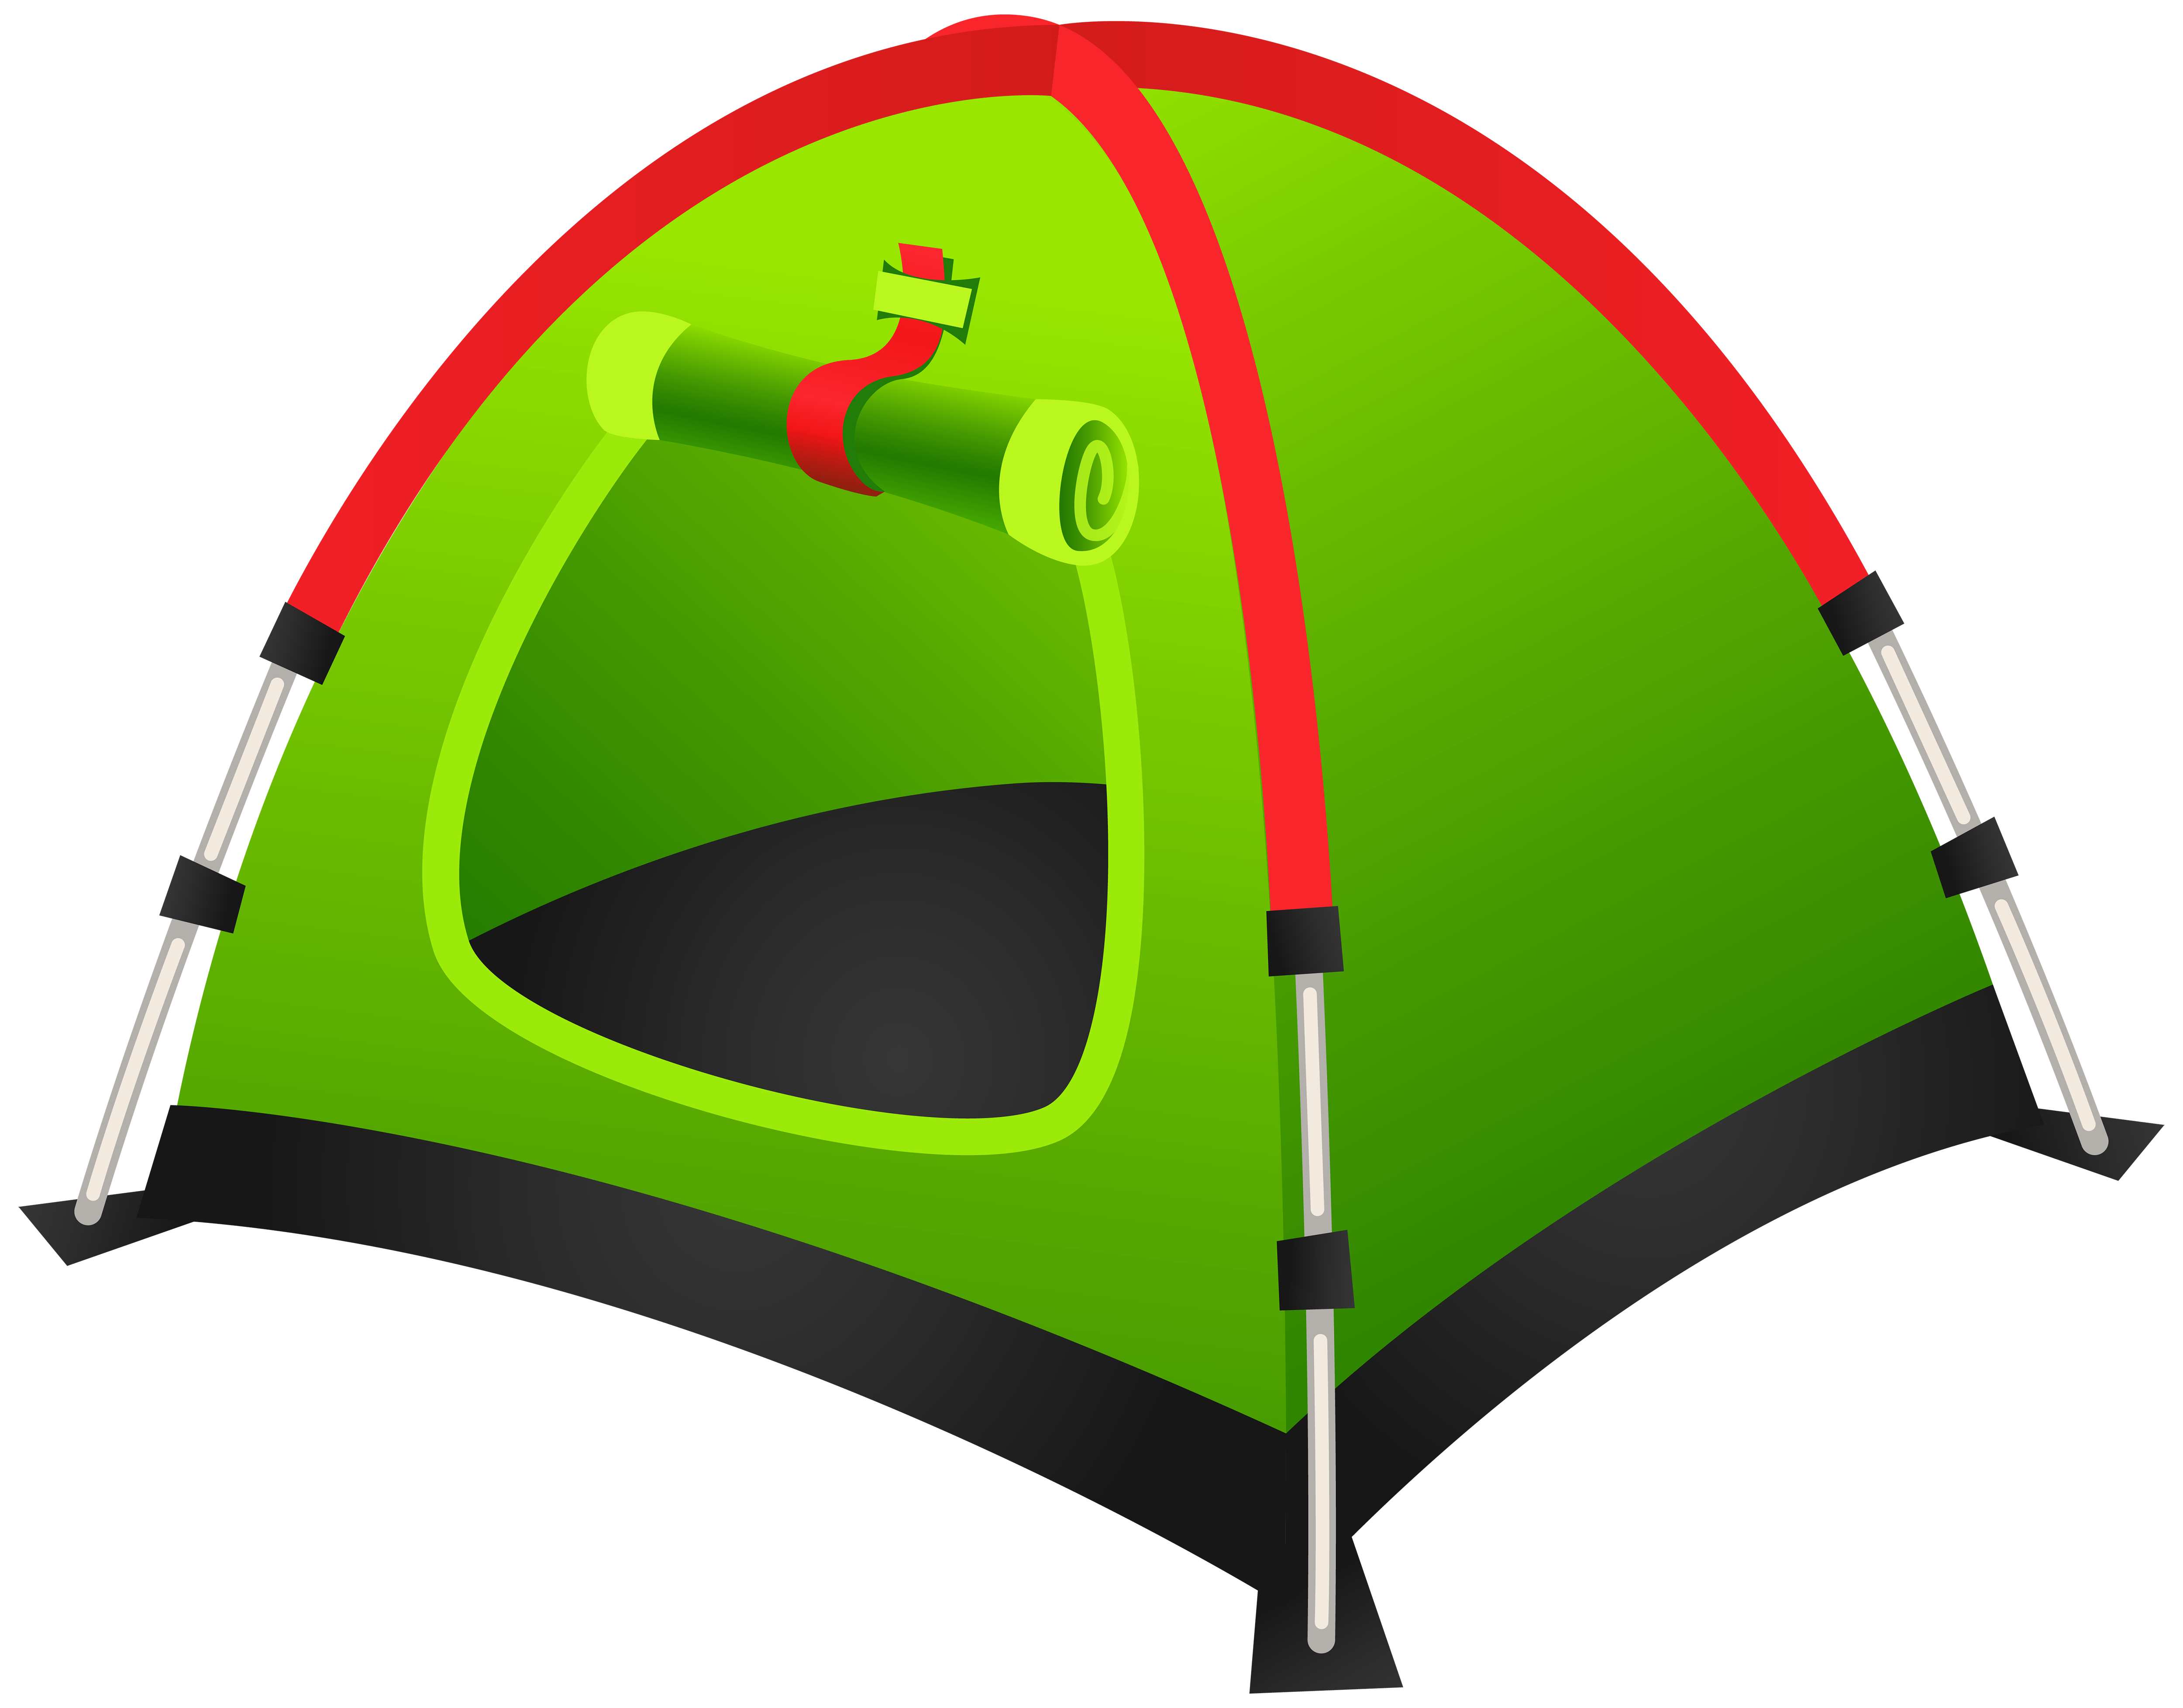 Green tent png image. Holiday clipart tourist